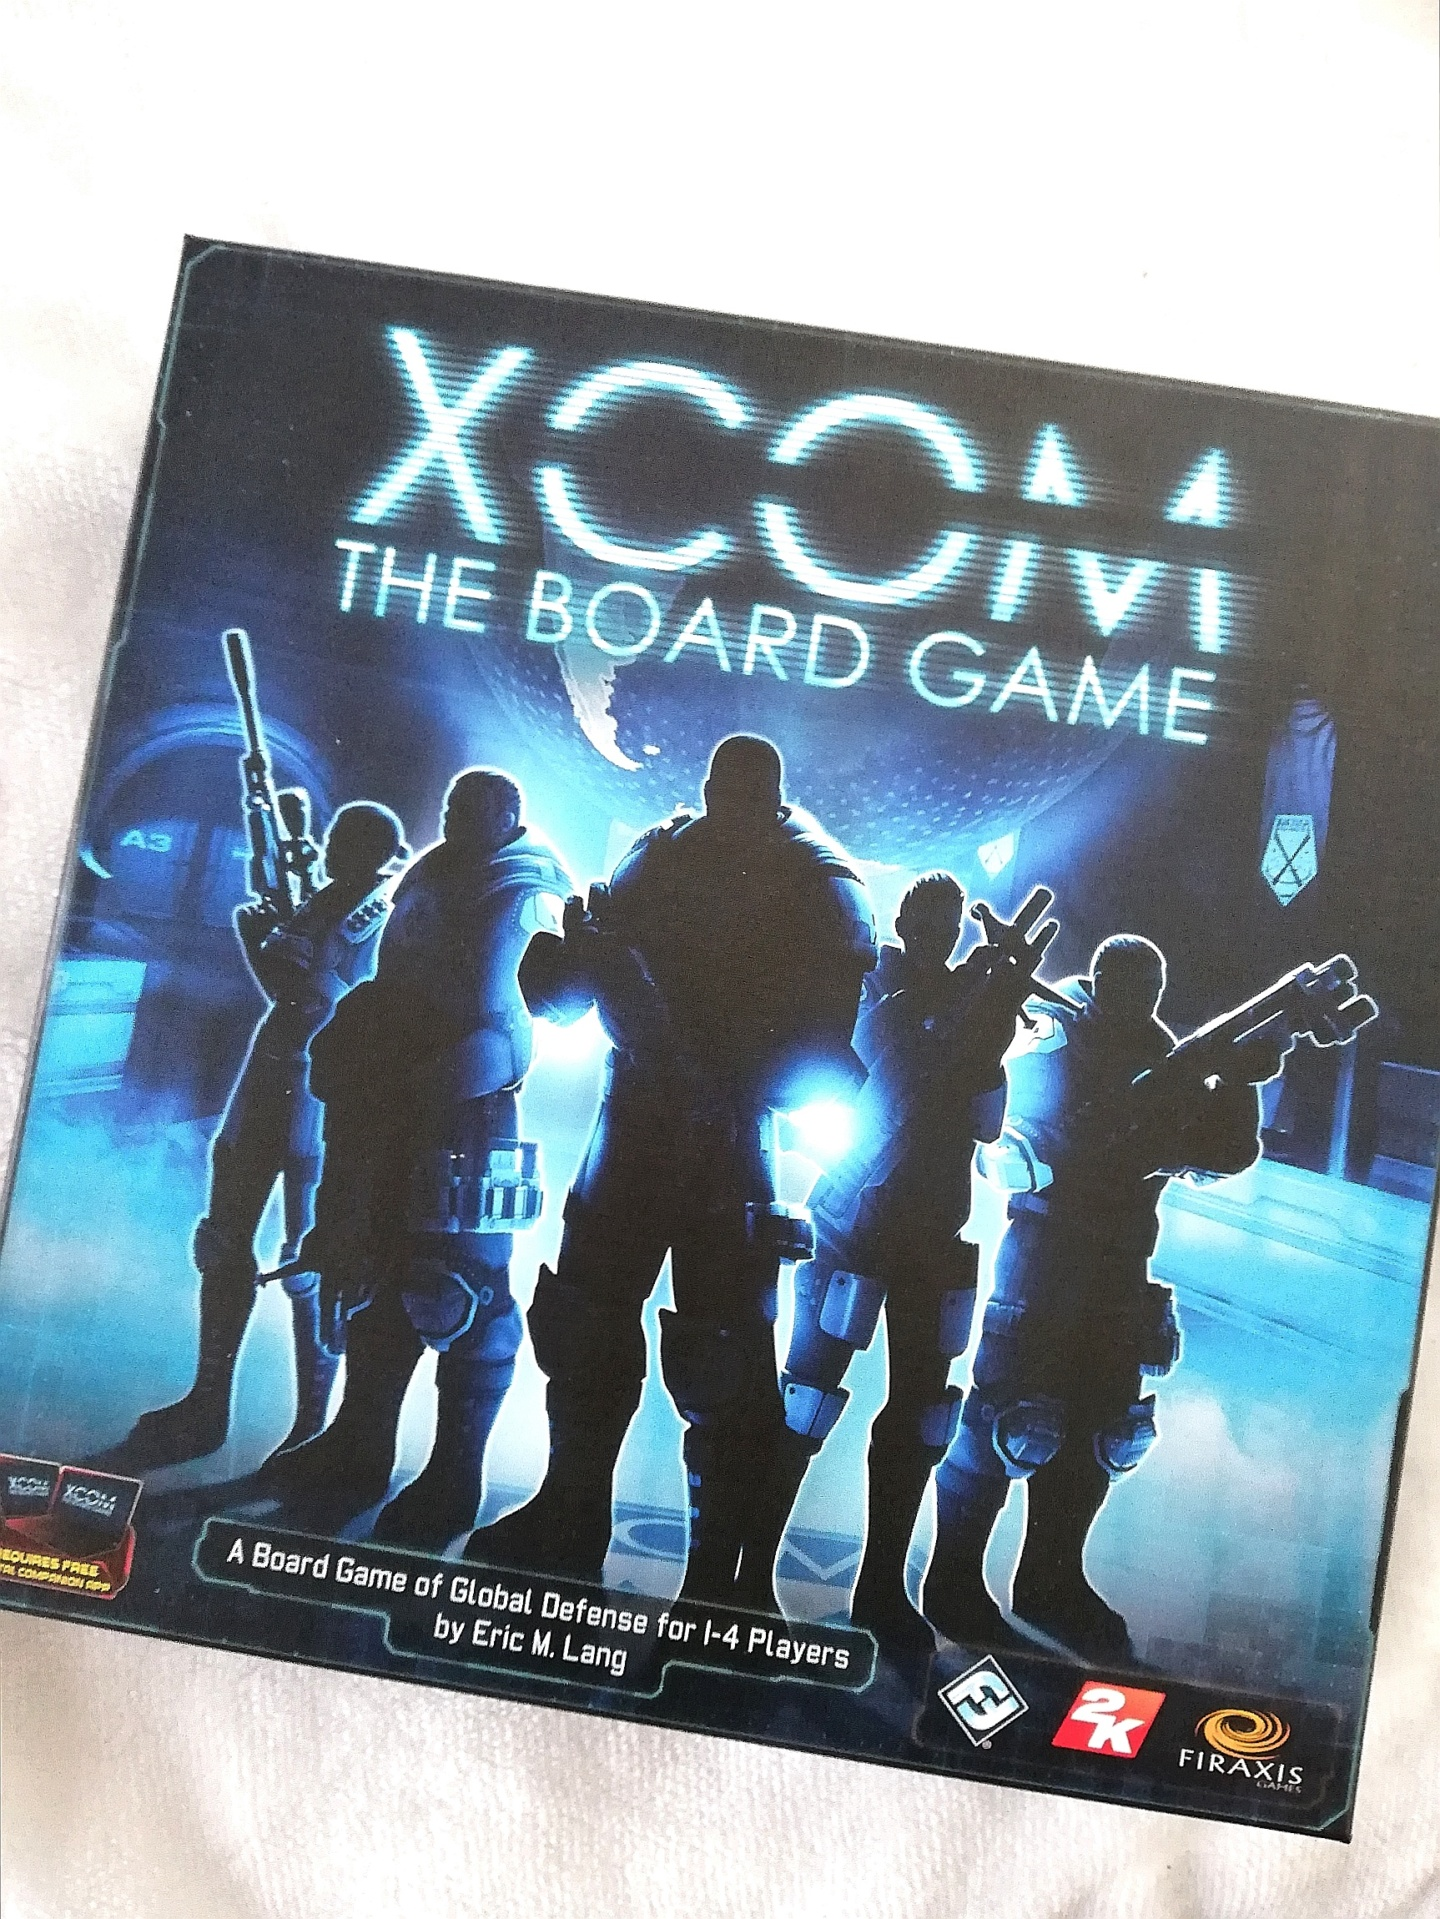 X-COM: The Hardest Board Game I've Ever Played